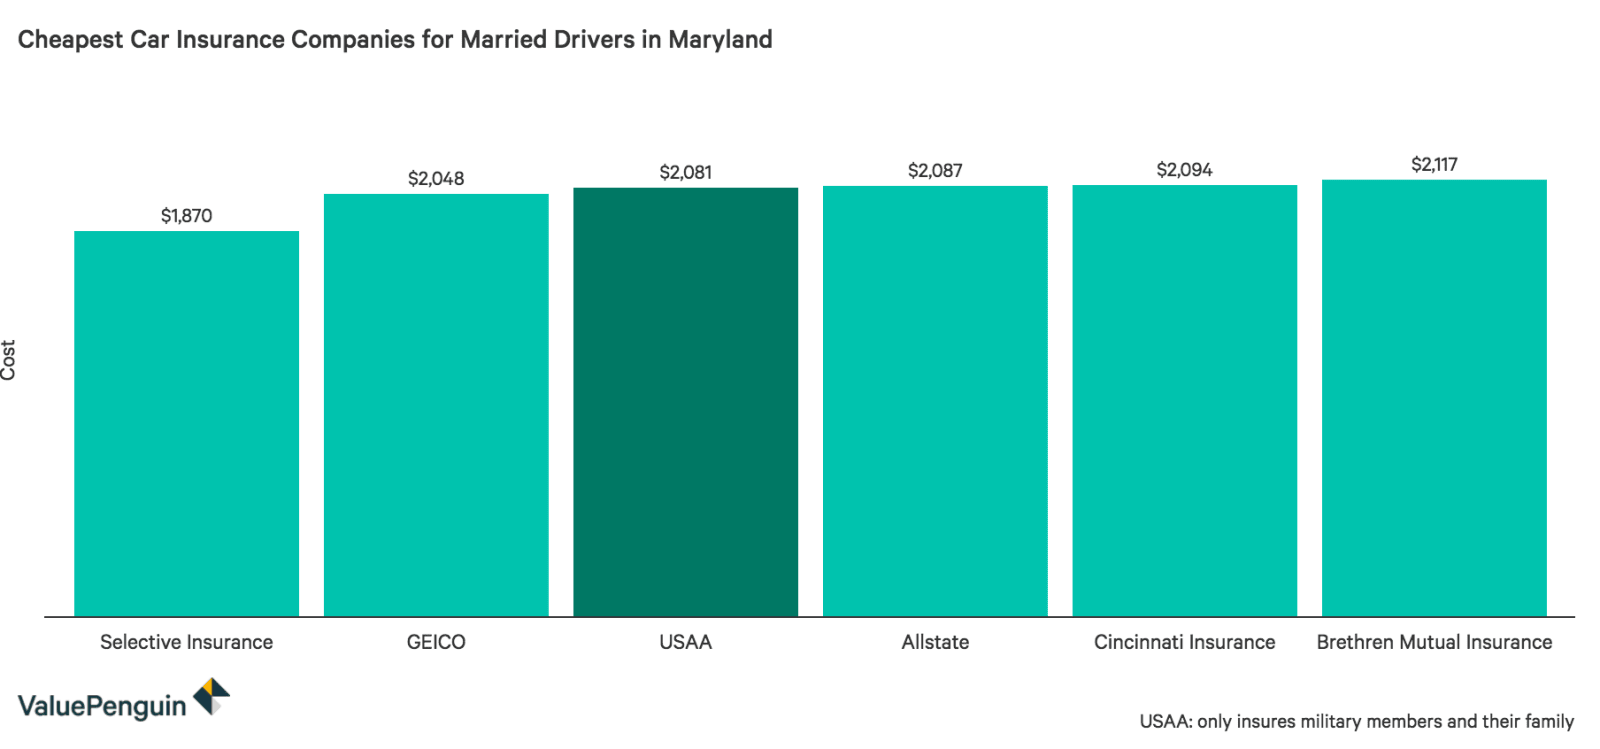 This graph shows which six companies had the most affordable annual rates for married couples driving in Maryland